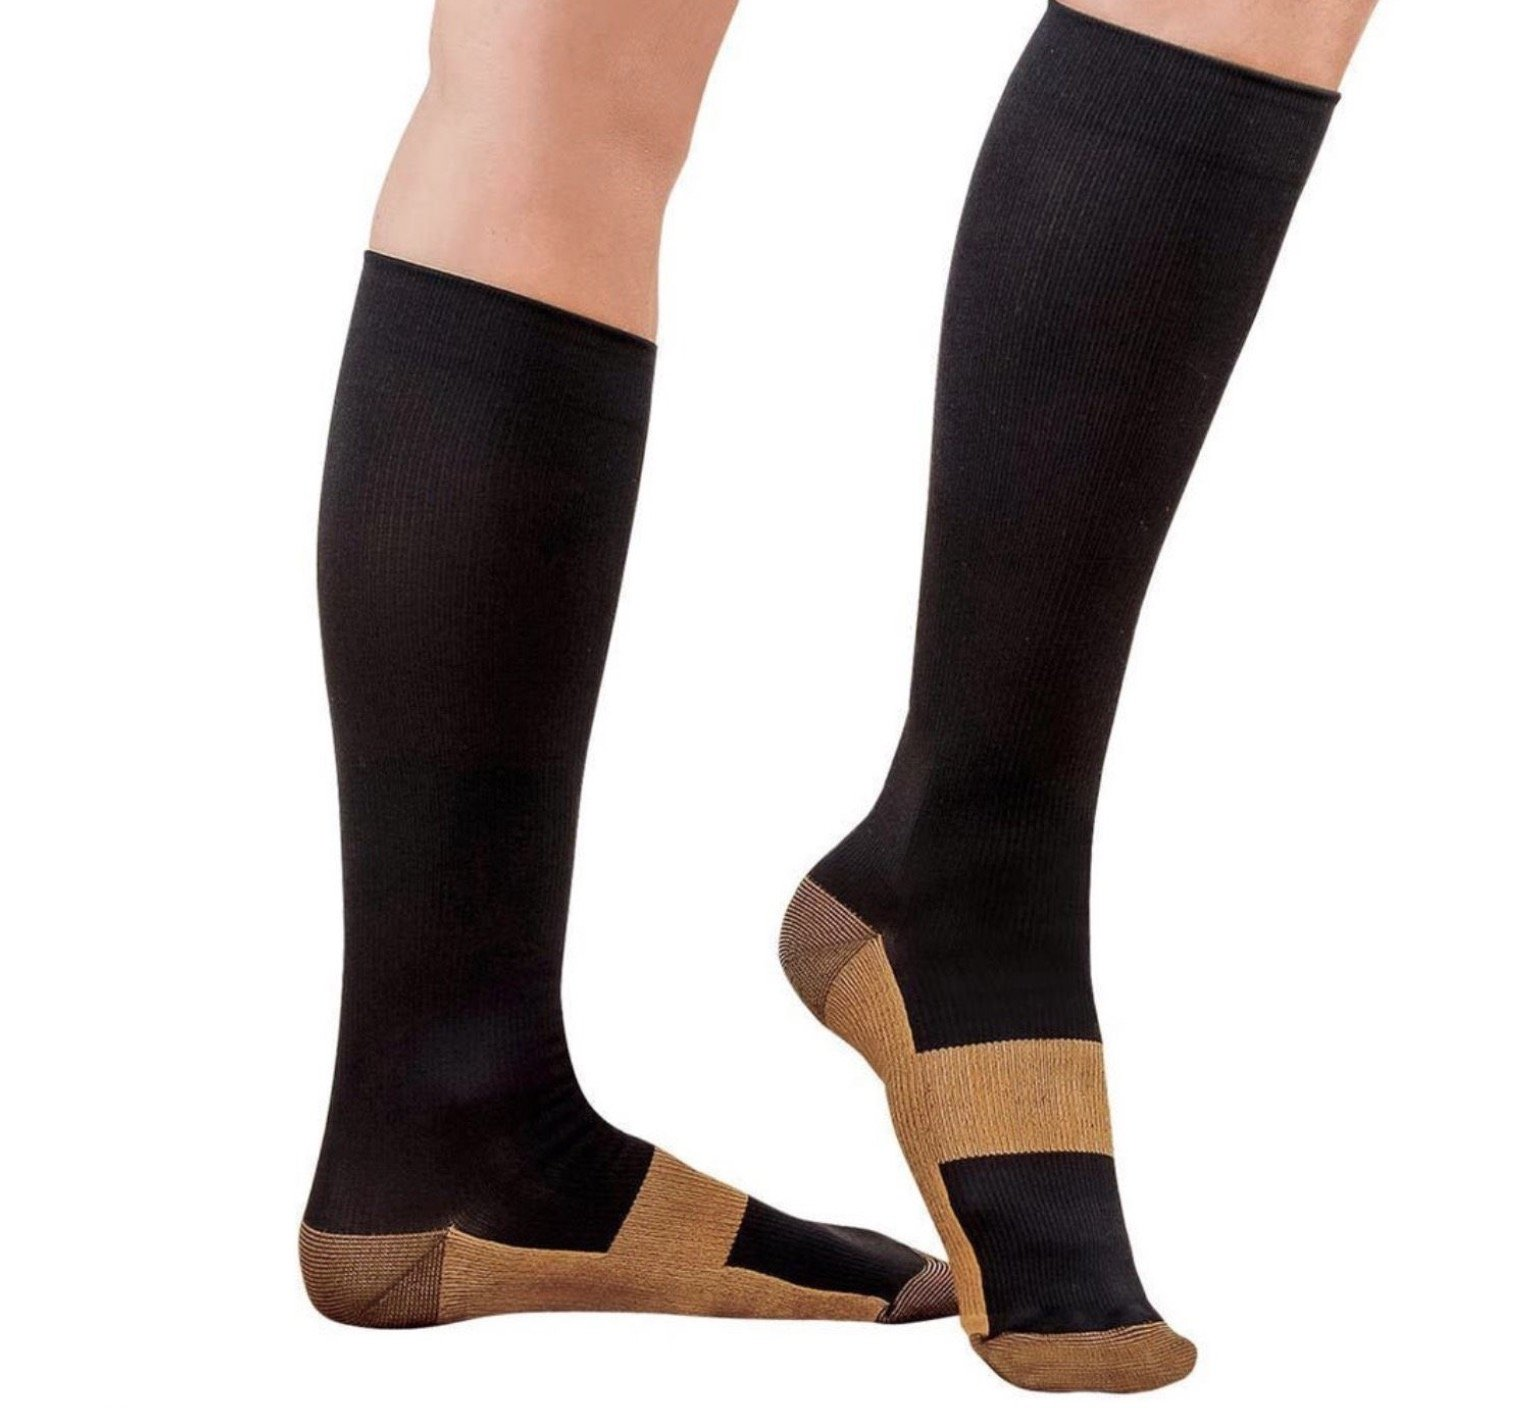 5ddaa4b8ef Get Quotations · Copper Compression Support Socks 20-30mmHg Graduated Men's  Women's by Compression Excellence (L/